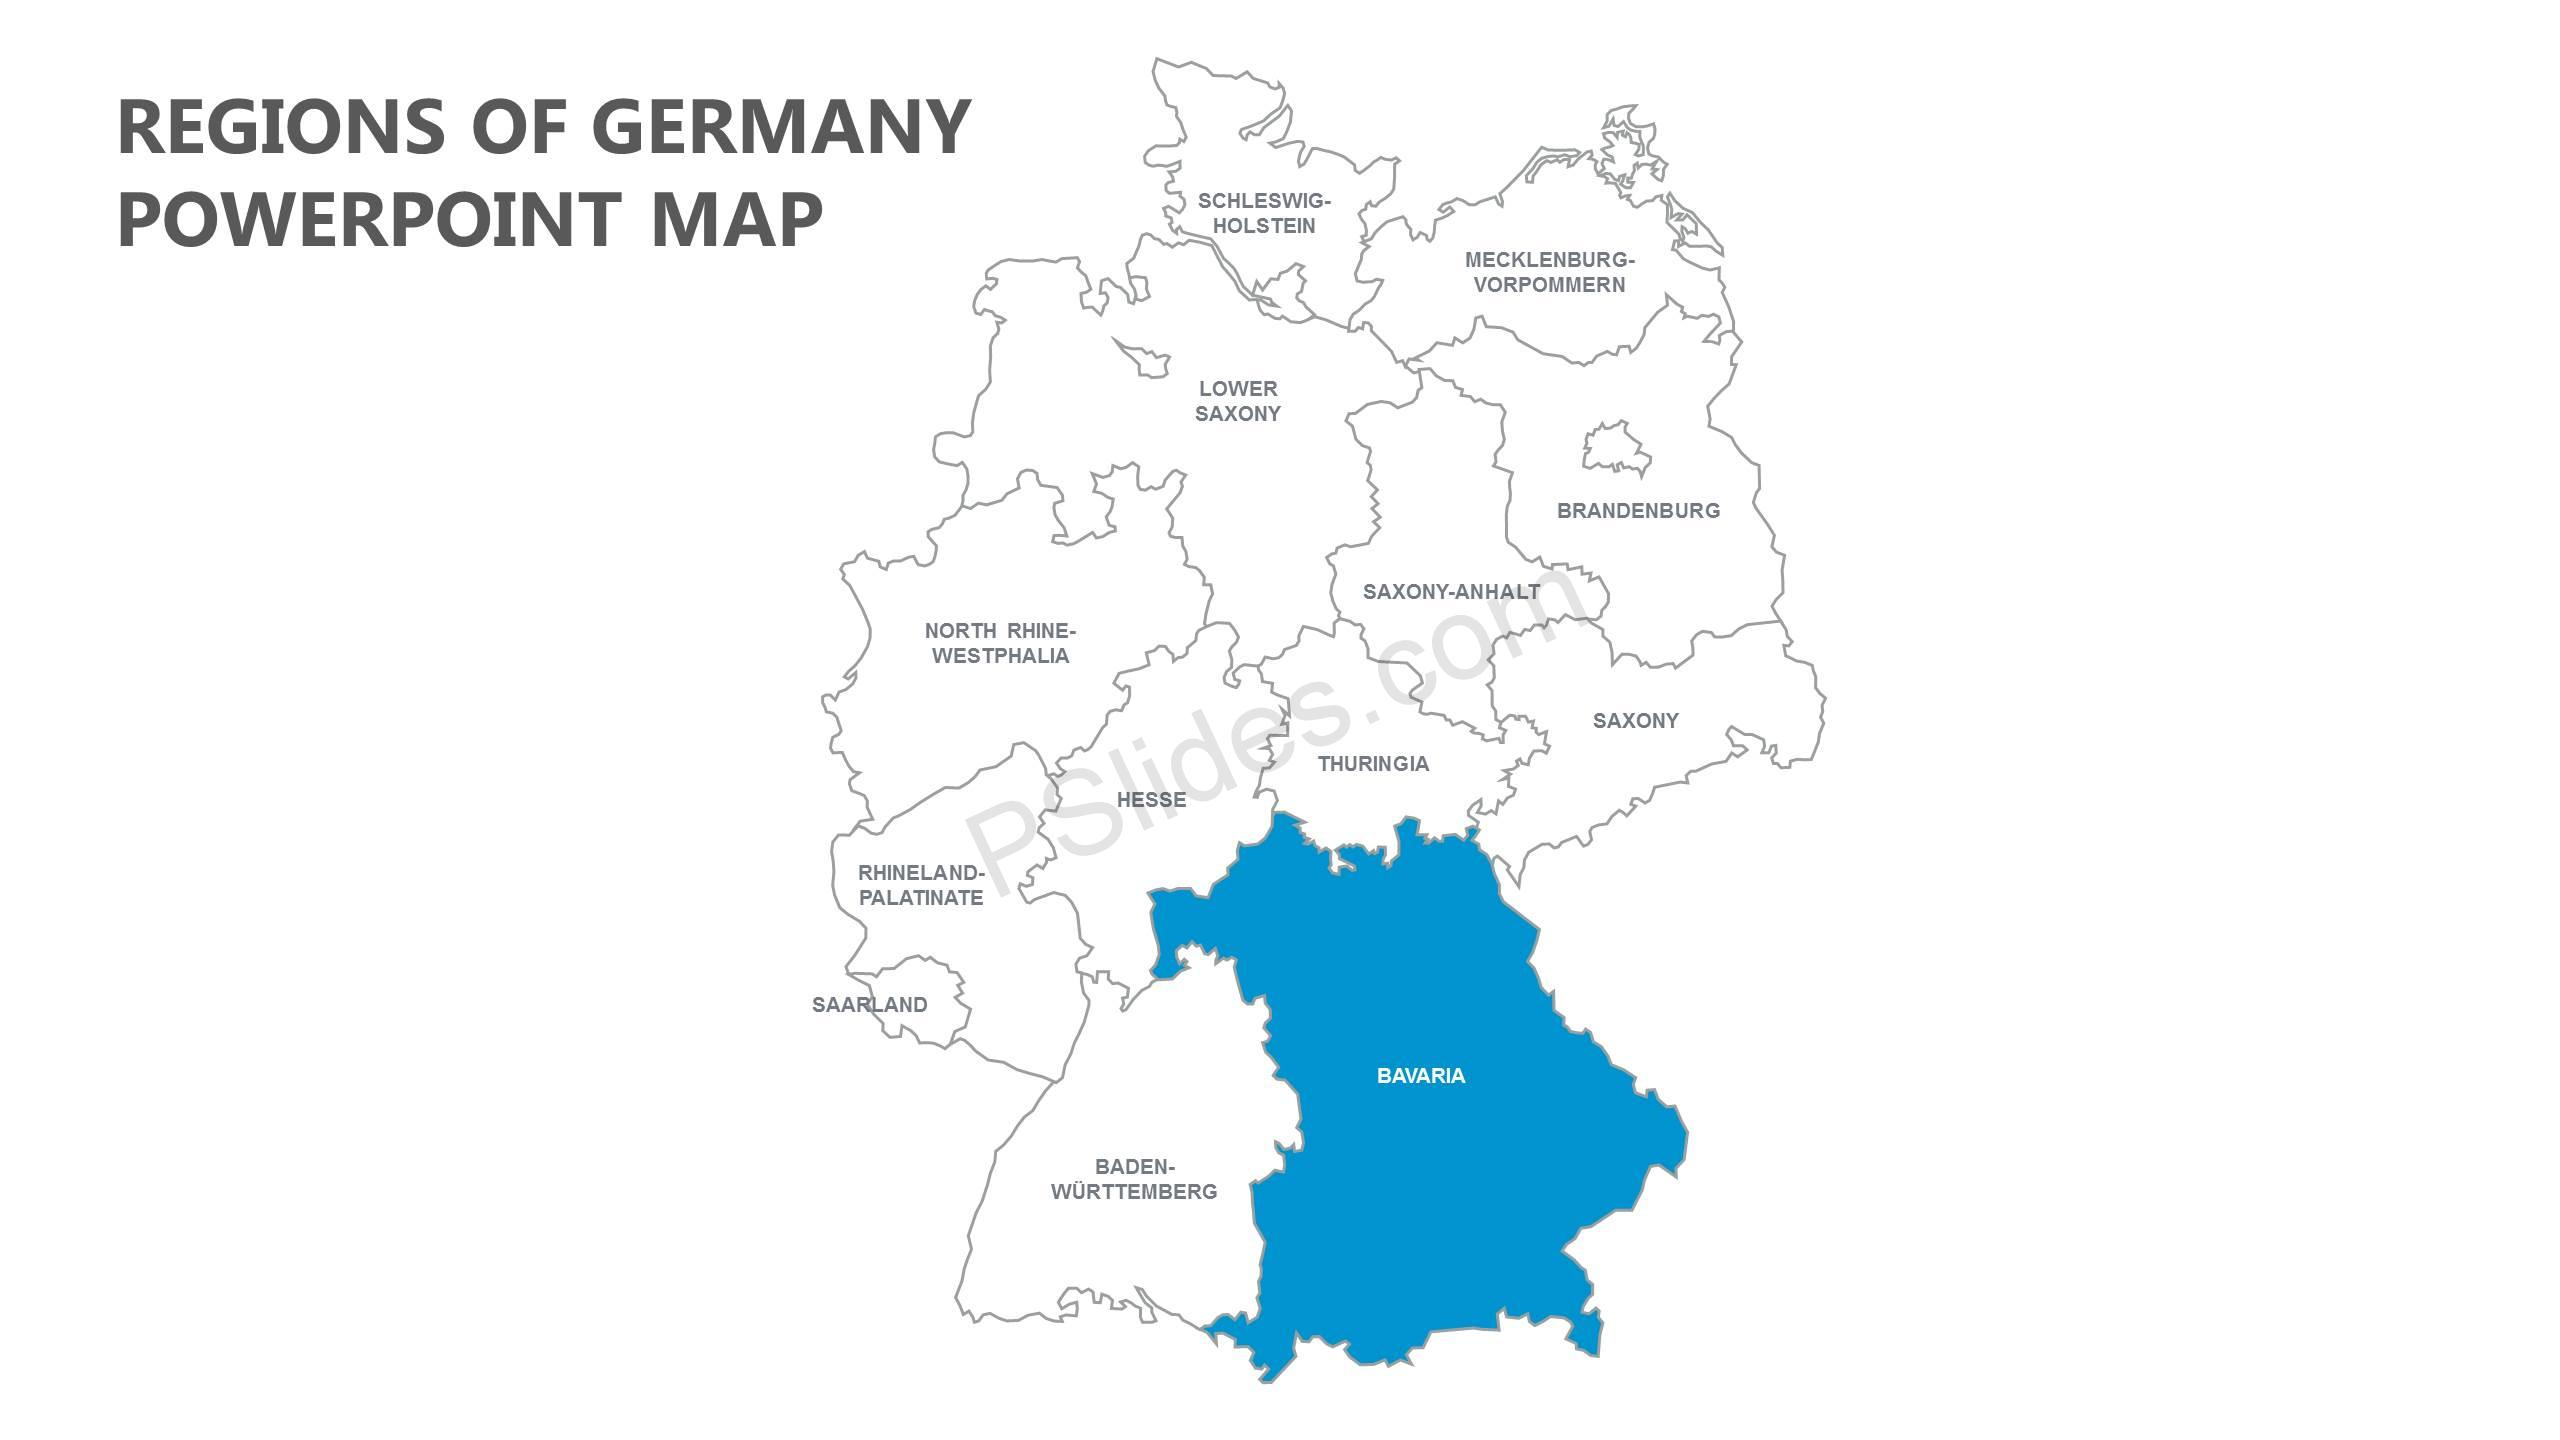 Regions Of Germany Map.Regions Of Germany Powerpoint Map Pslides